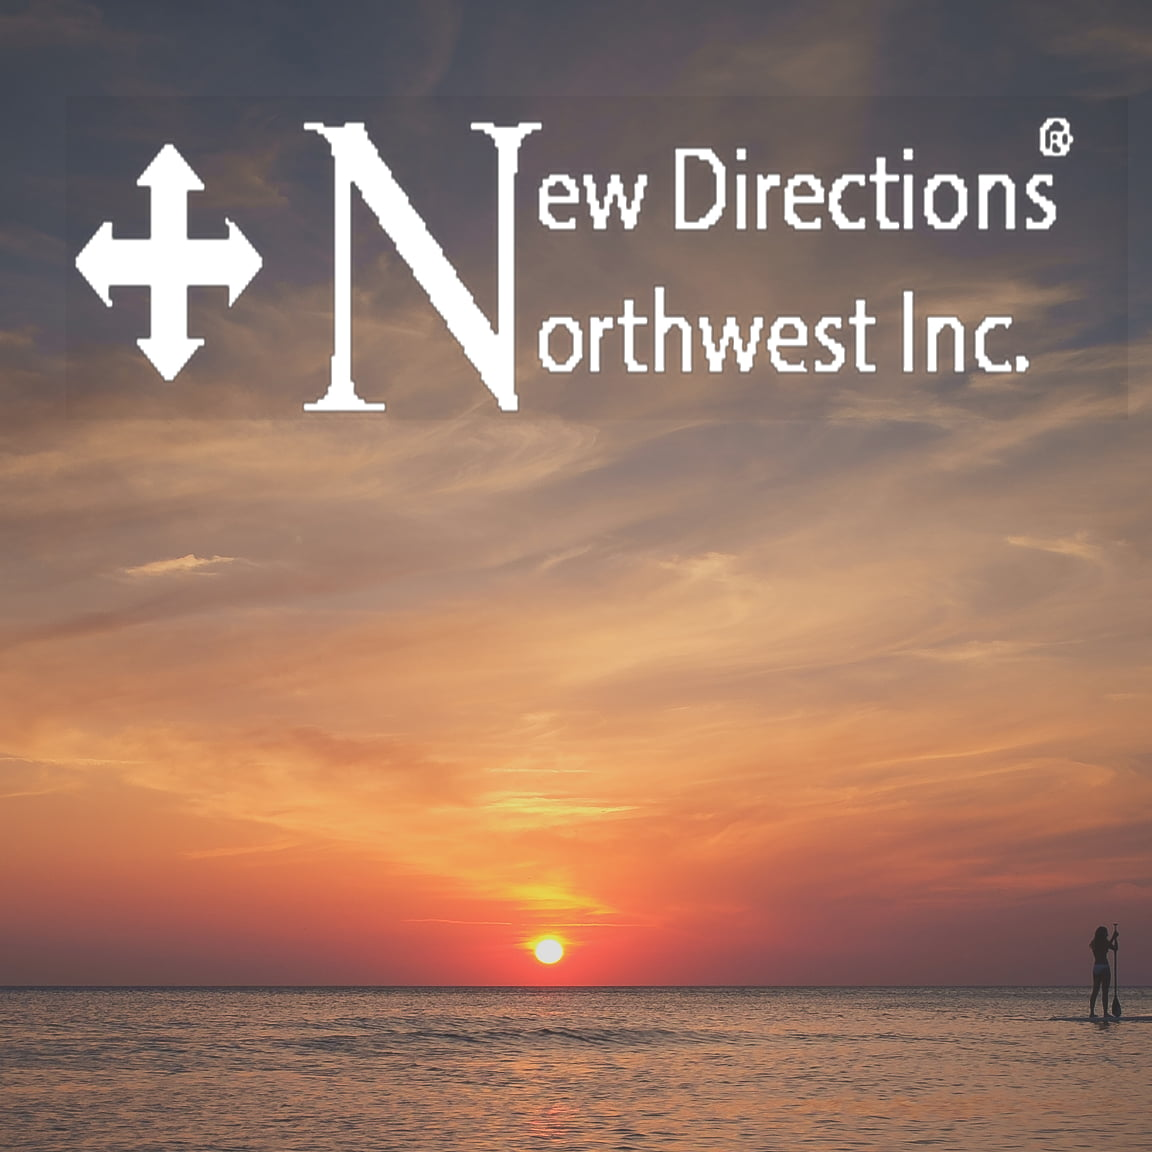 New Directions Northwest, Inc.